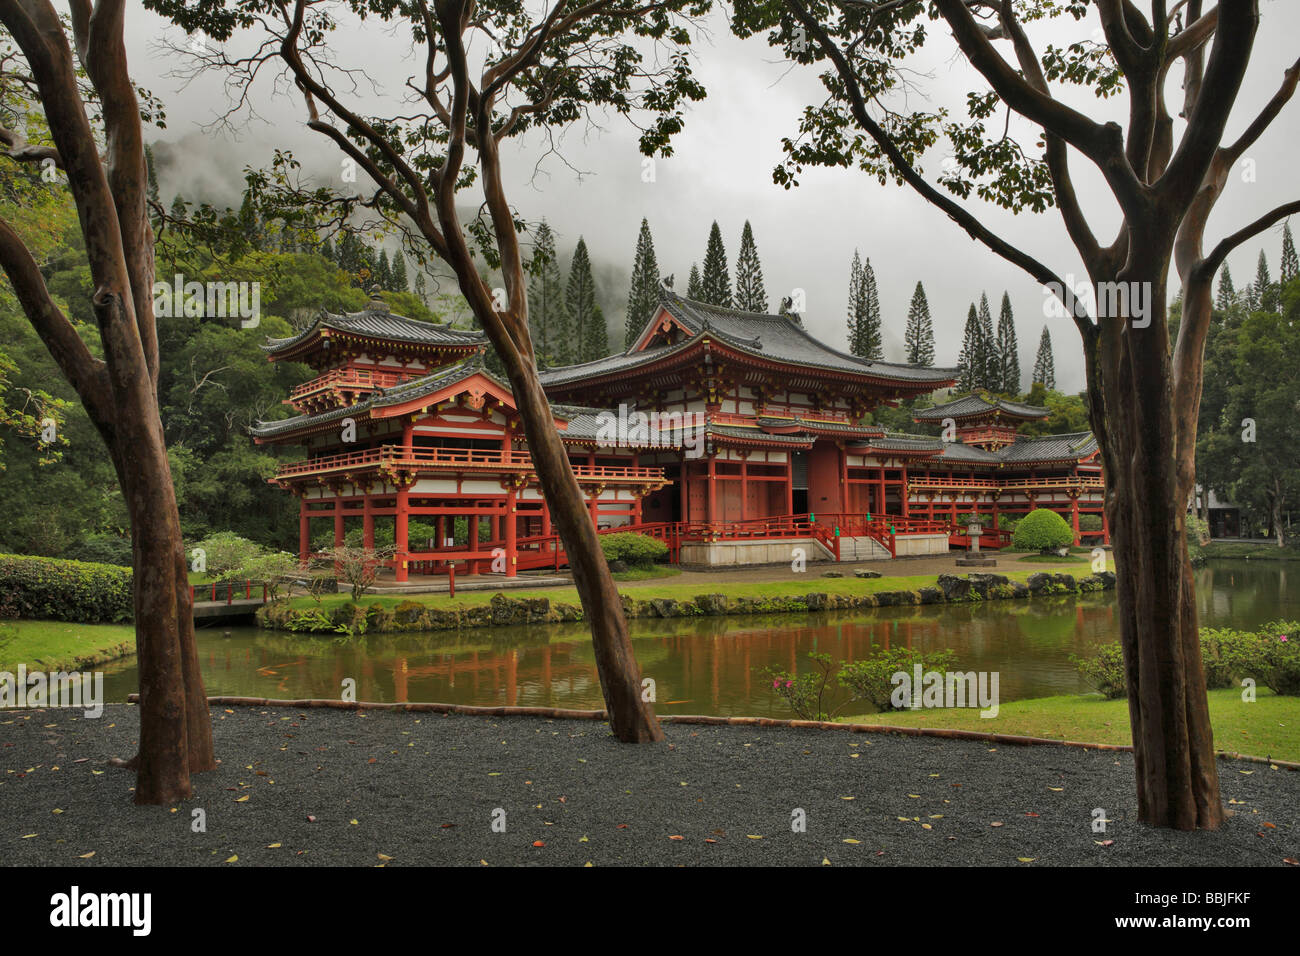 Replica of Japanese temple Byodo In Valley of the Temples Oahu Hawaii USA - Stock Image